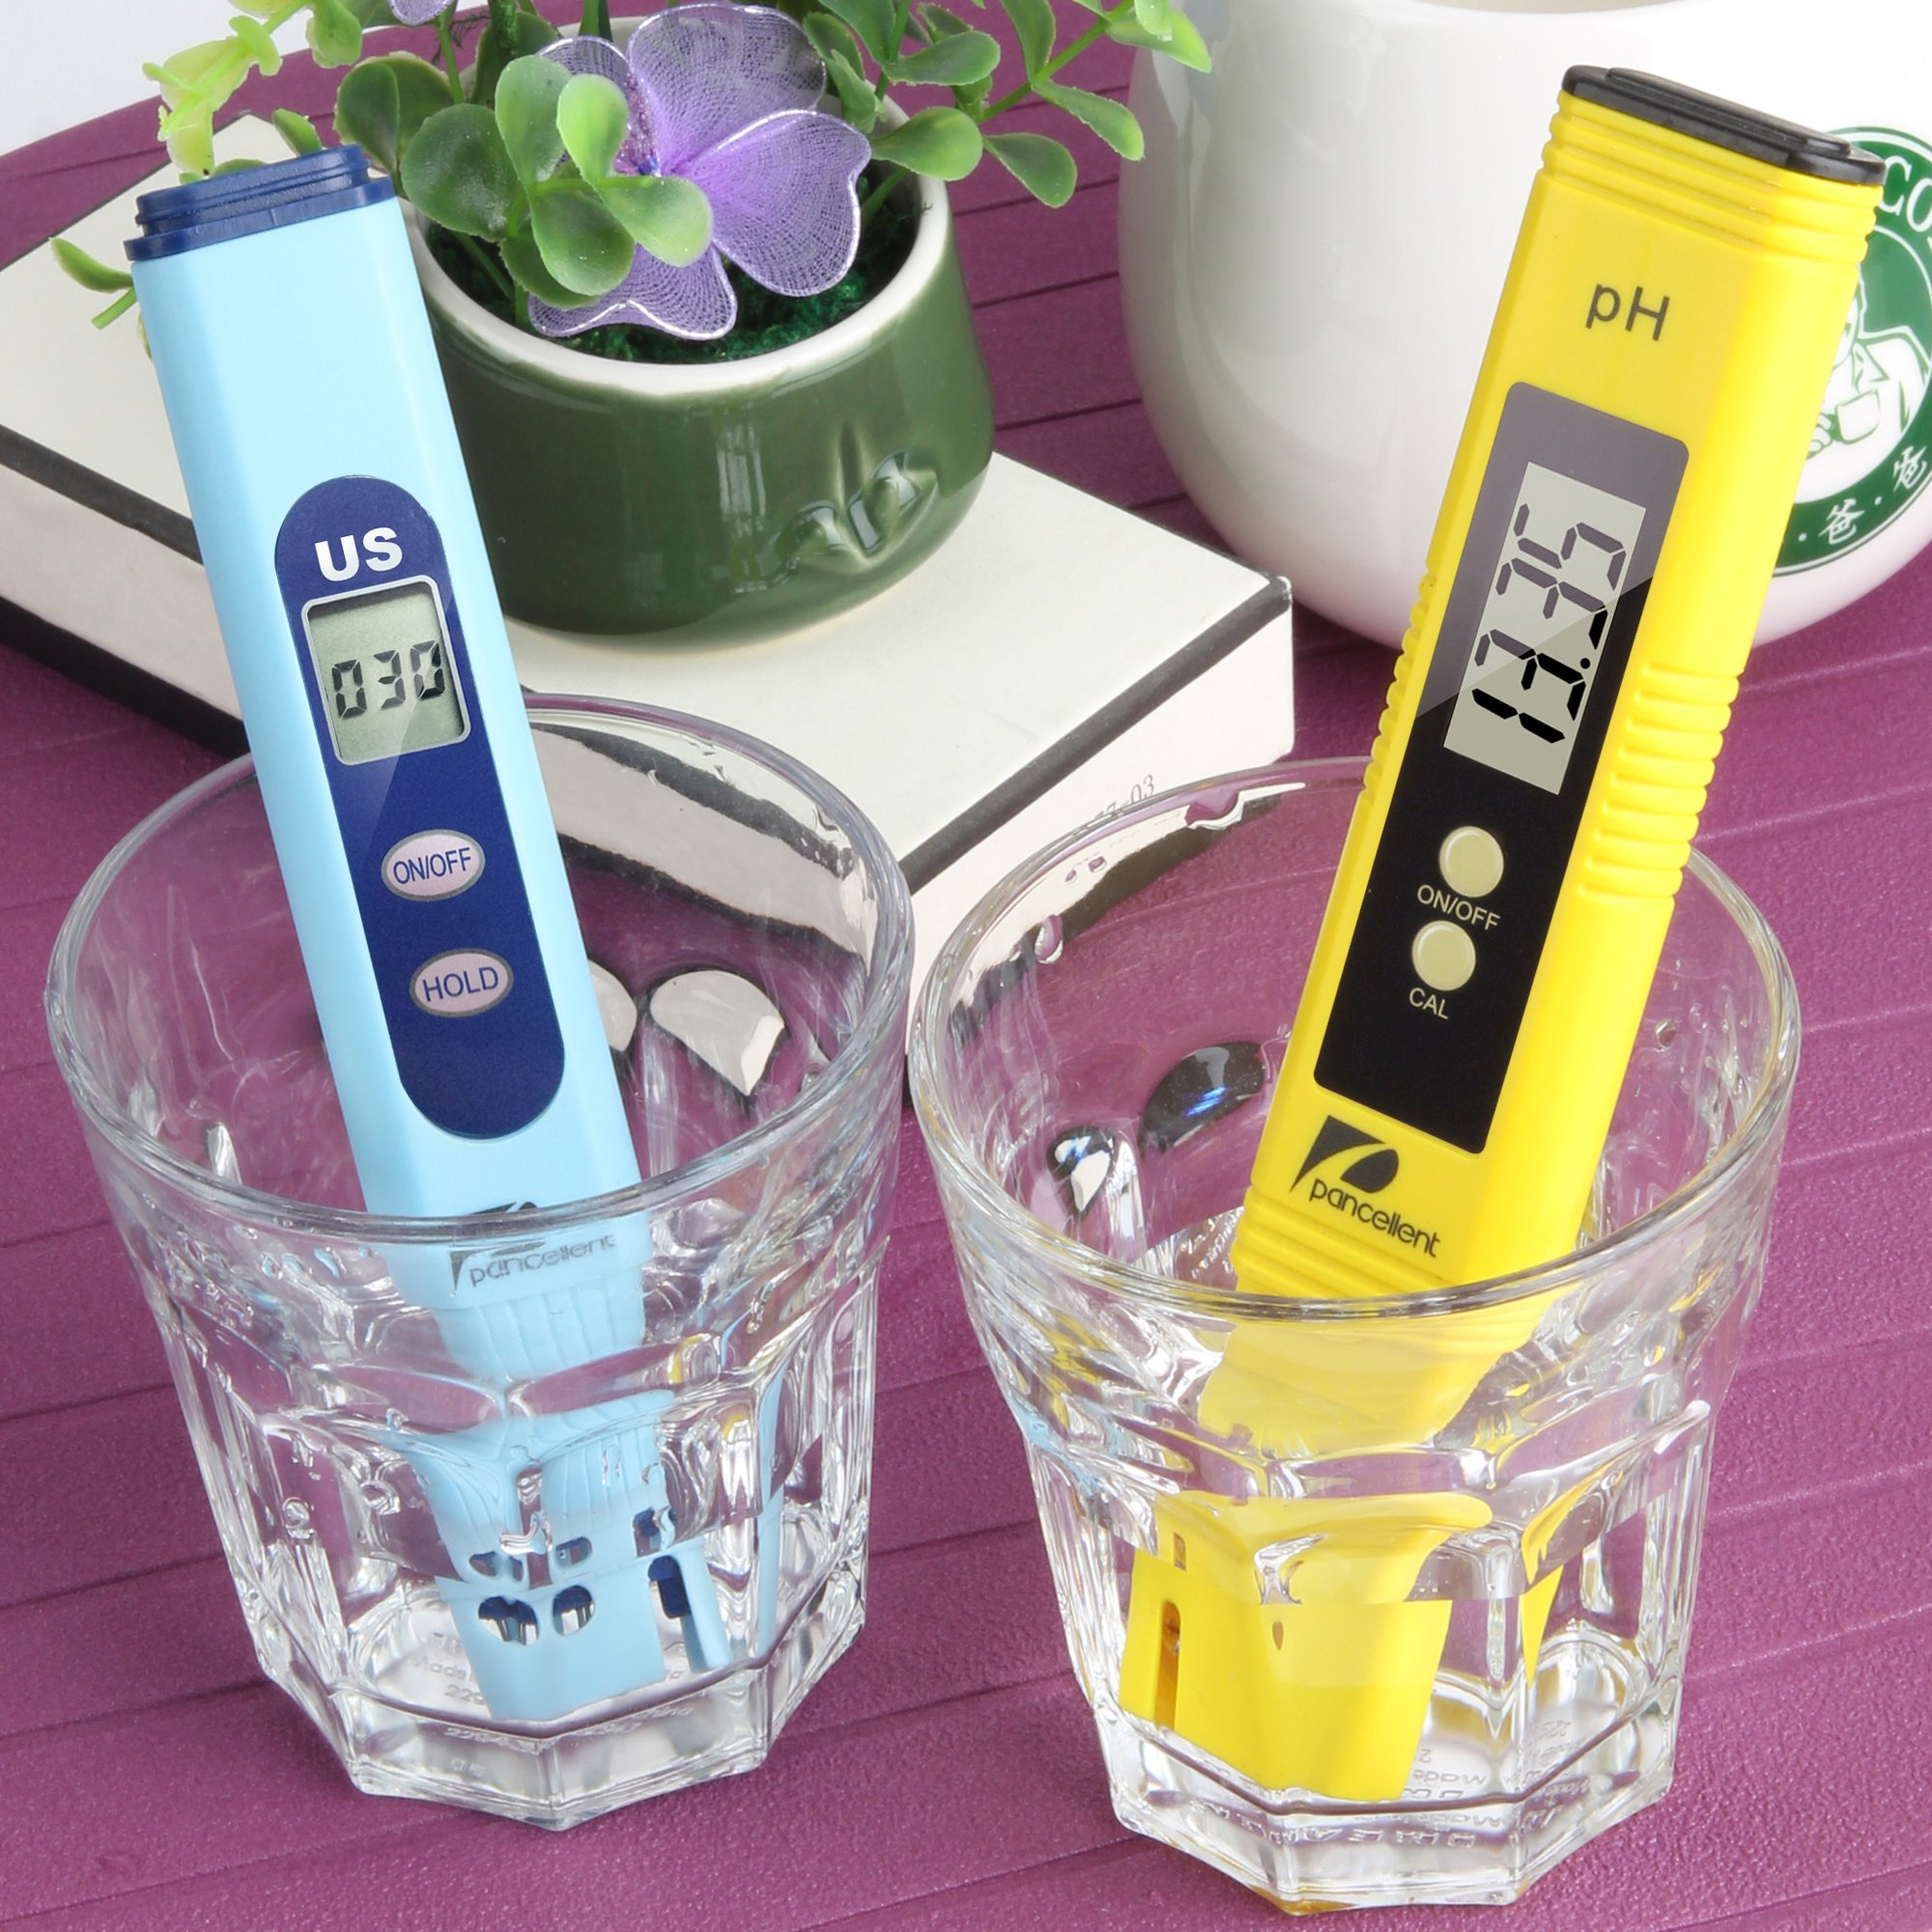 Water Quality Test Meter Pancellent EC PH 2 in 1 Kit 0-9990us/cm Electrical Conductivity 0.01pH Resolution 0.01pH Accuracy by Pancellent (Image #7)